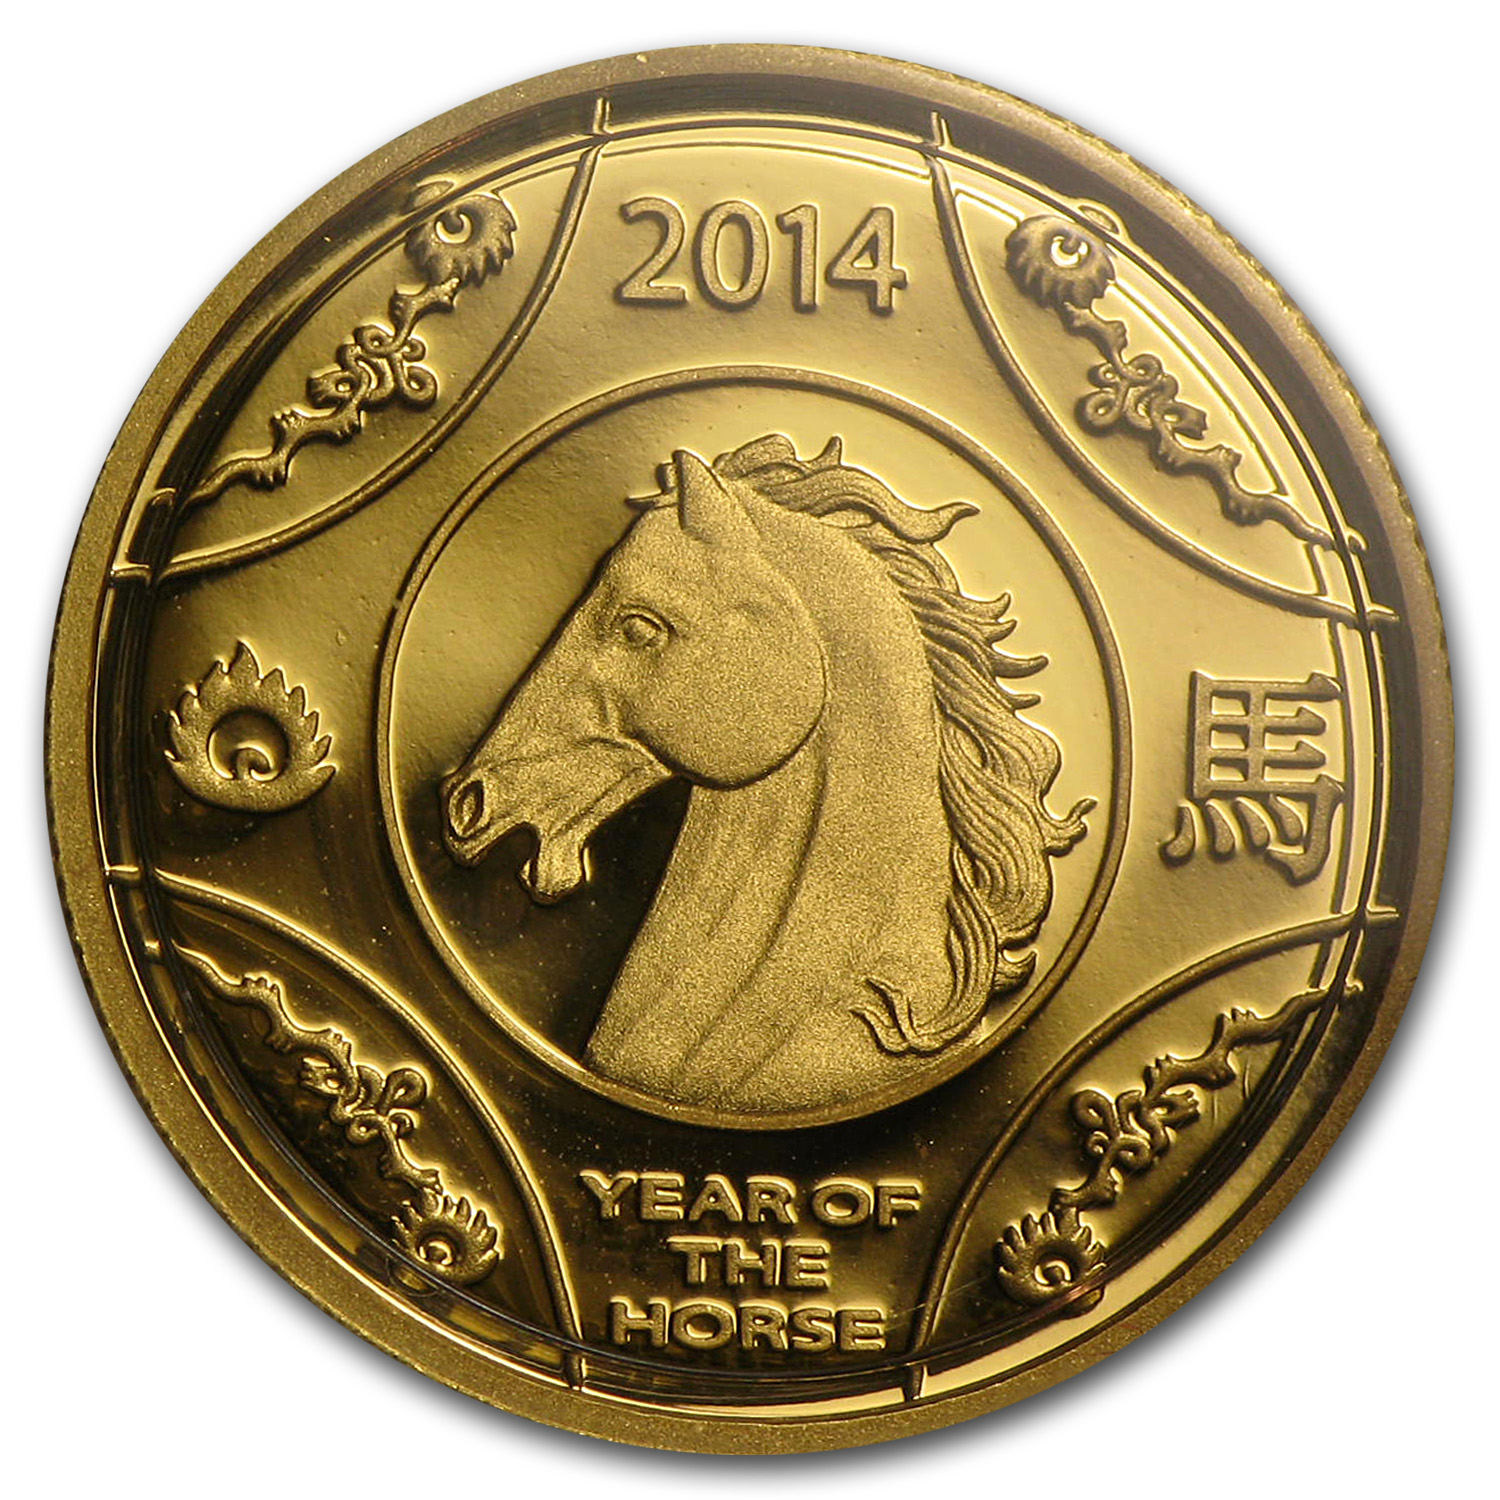 2014 1/10 oz Gold Royal Australian Mint Year of the Horse Proof